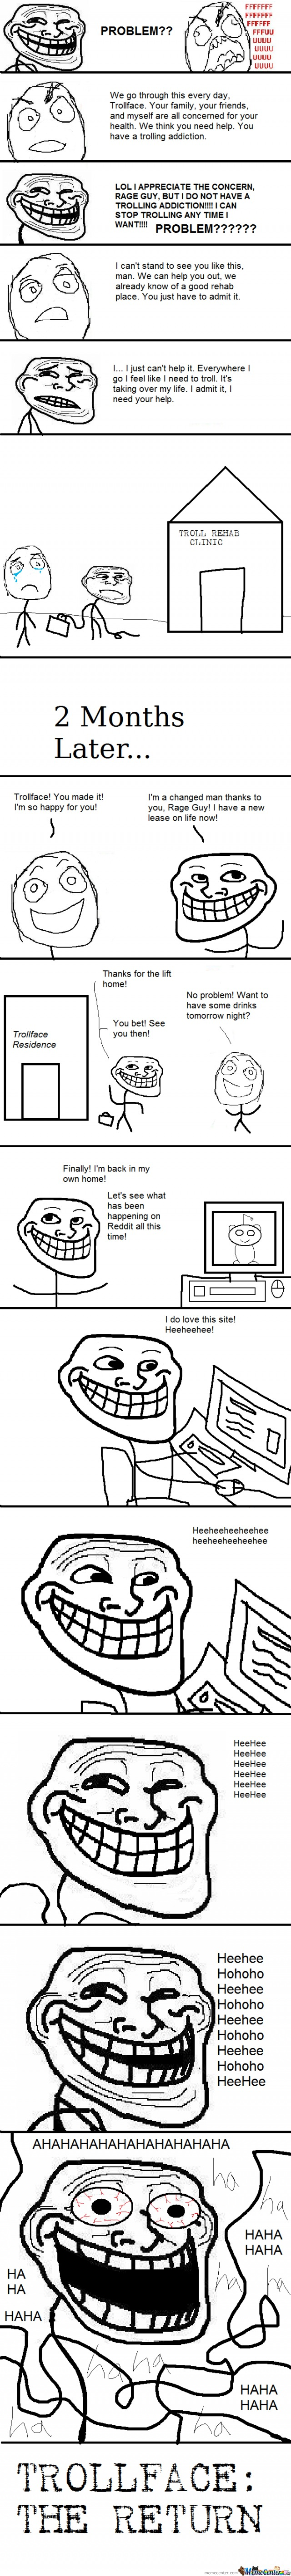 The Trollface Story:part 2